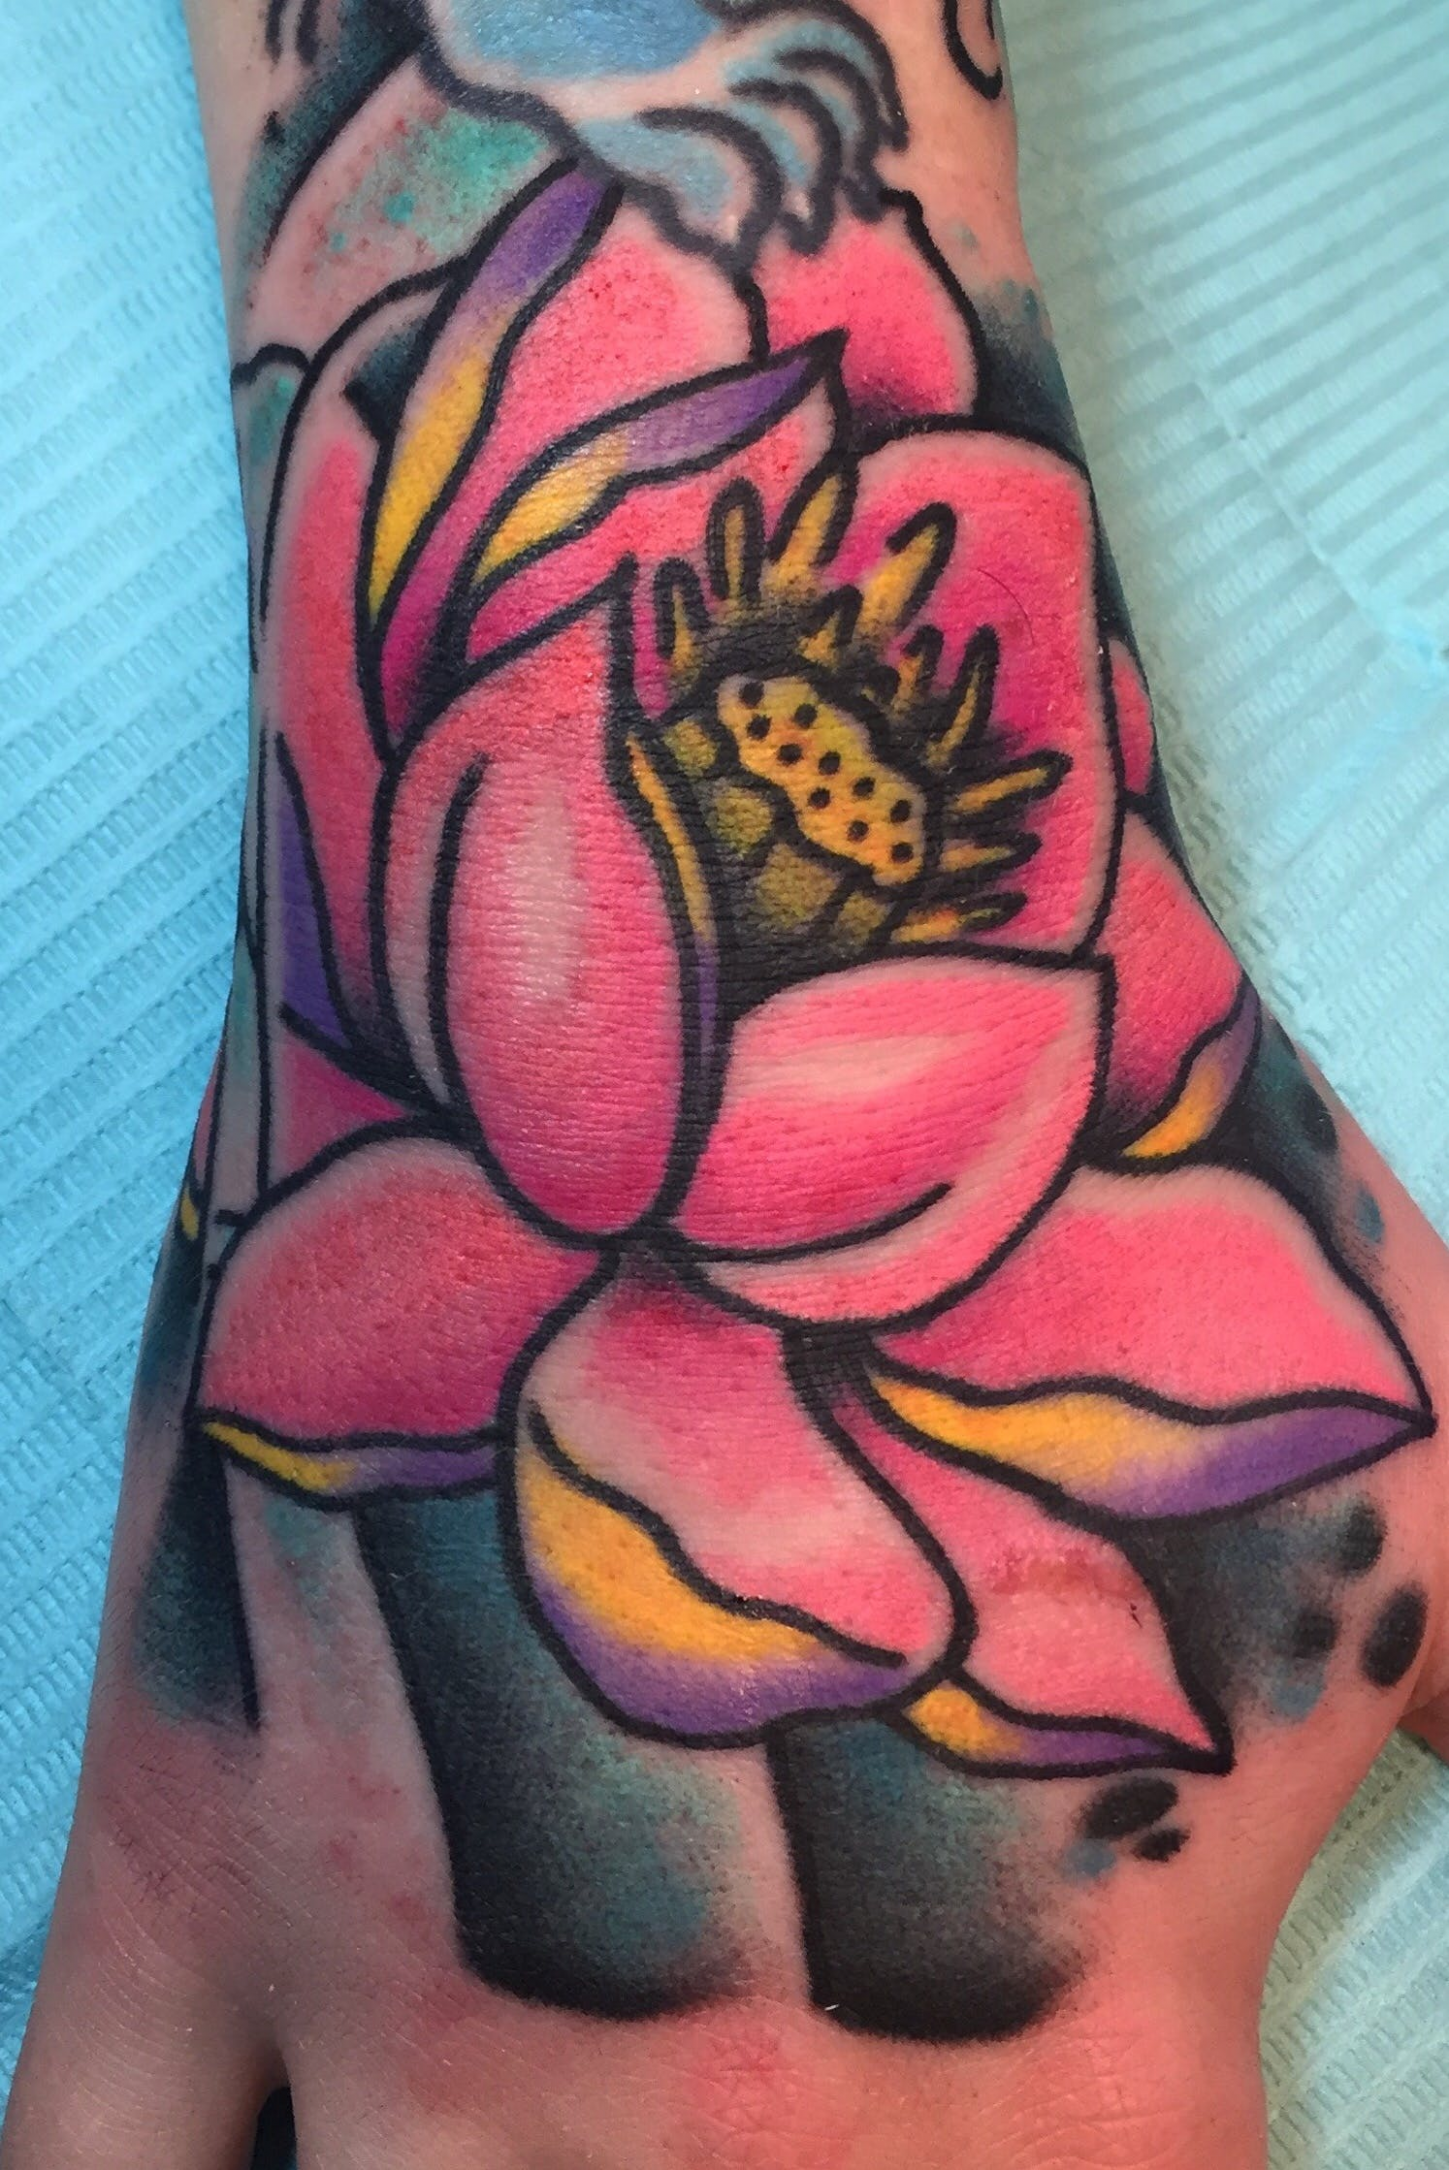 , Why Is Lotus Tattoo Castleford So Famous? | lotus tattoo castleford, My Tattoo Blog 2020, My Tattoo Blog 2020